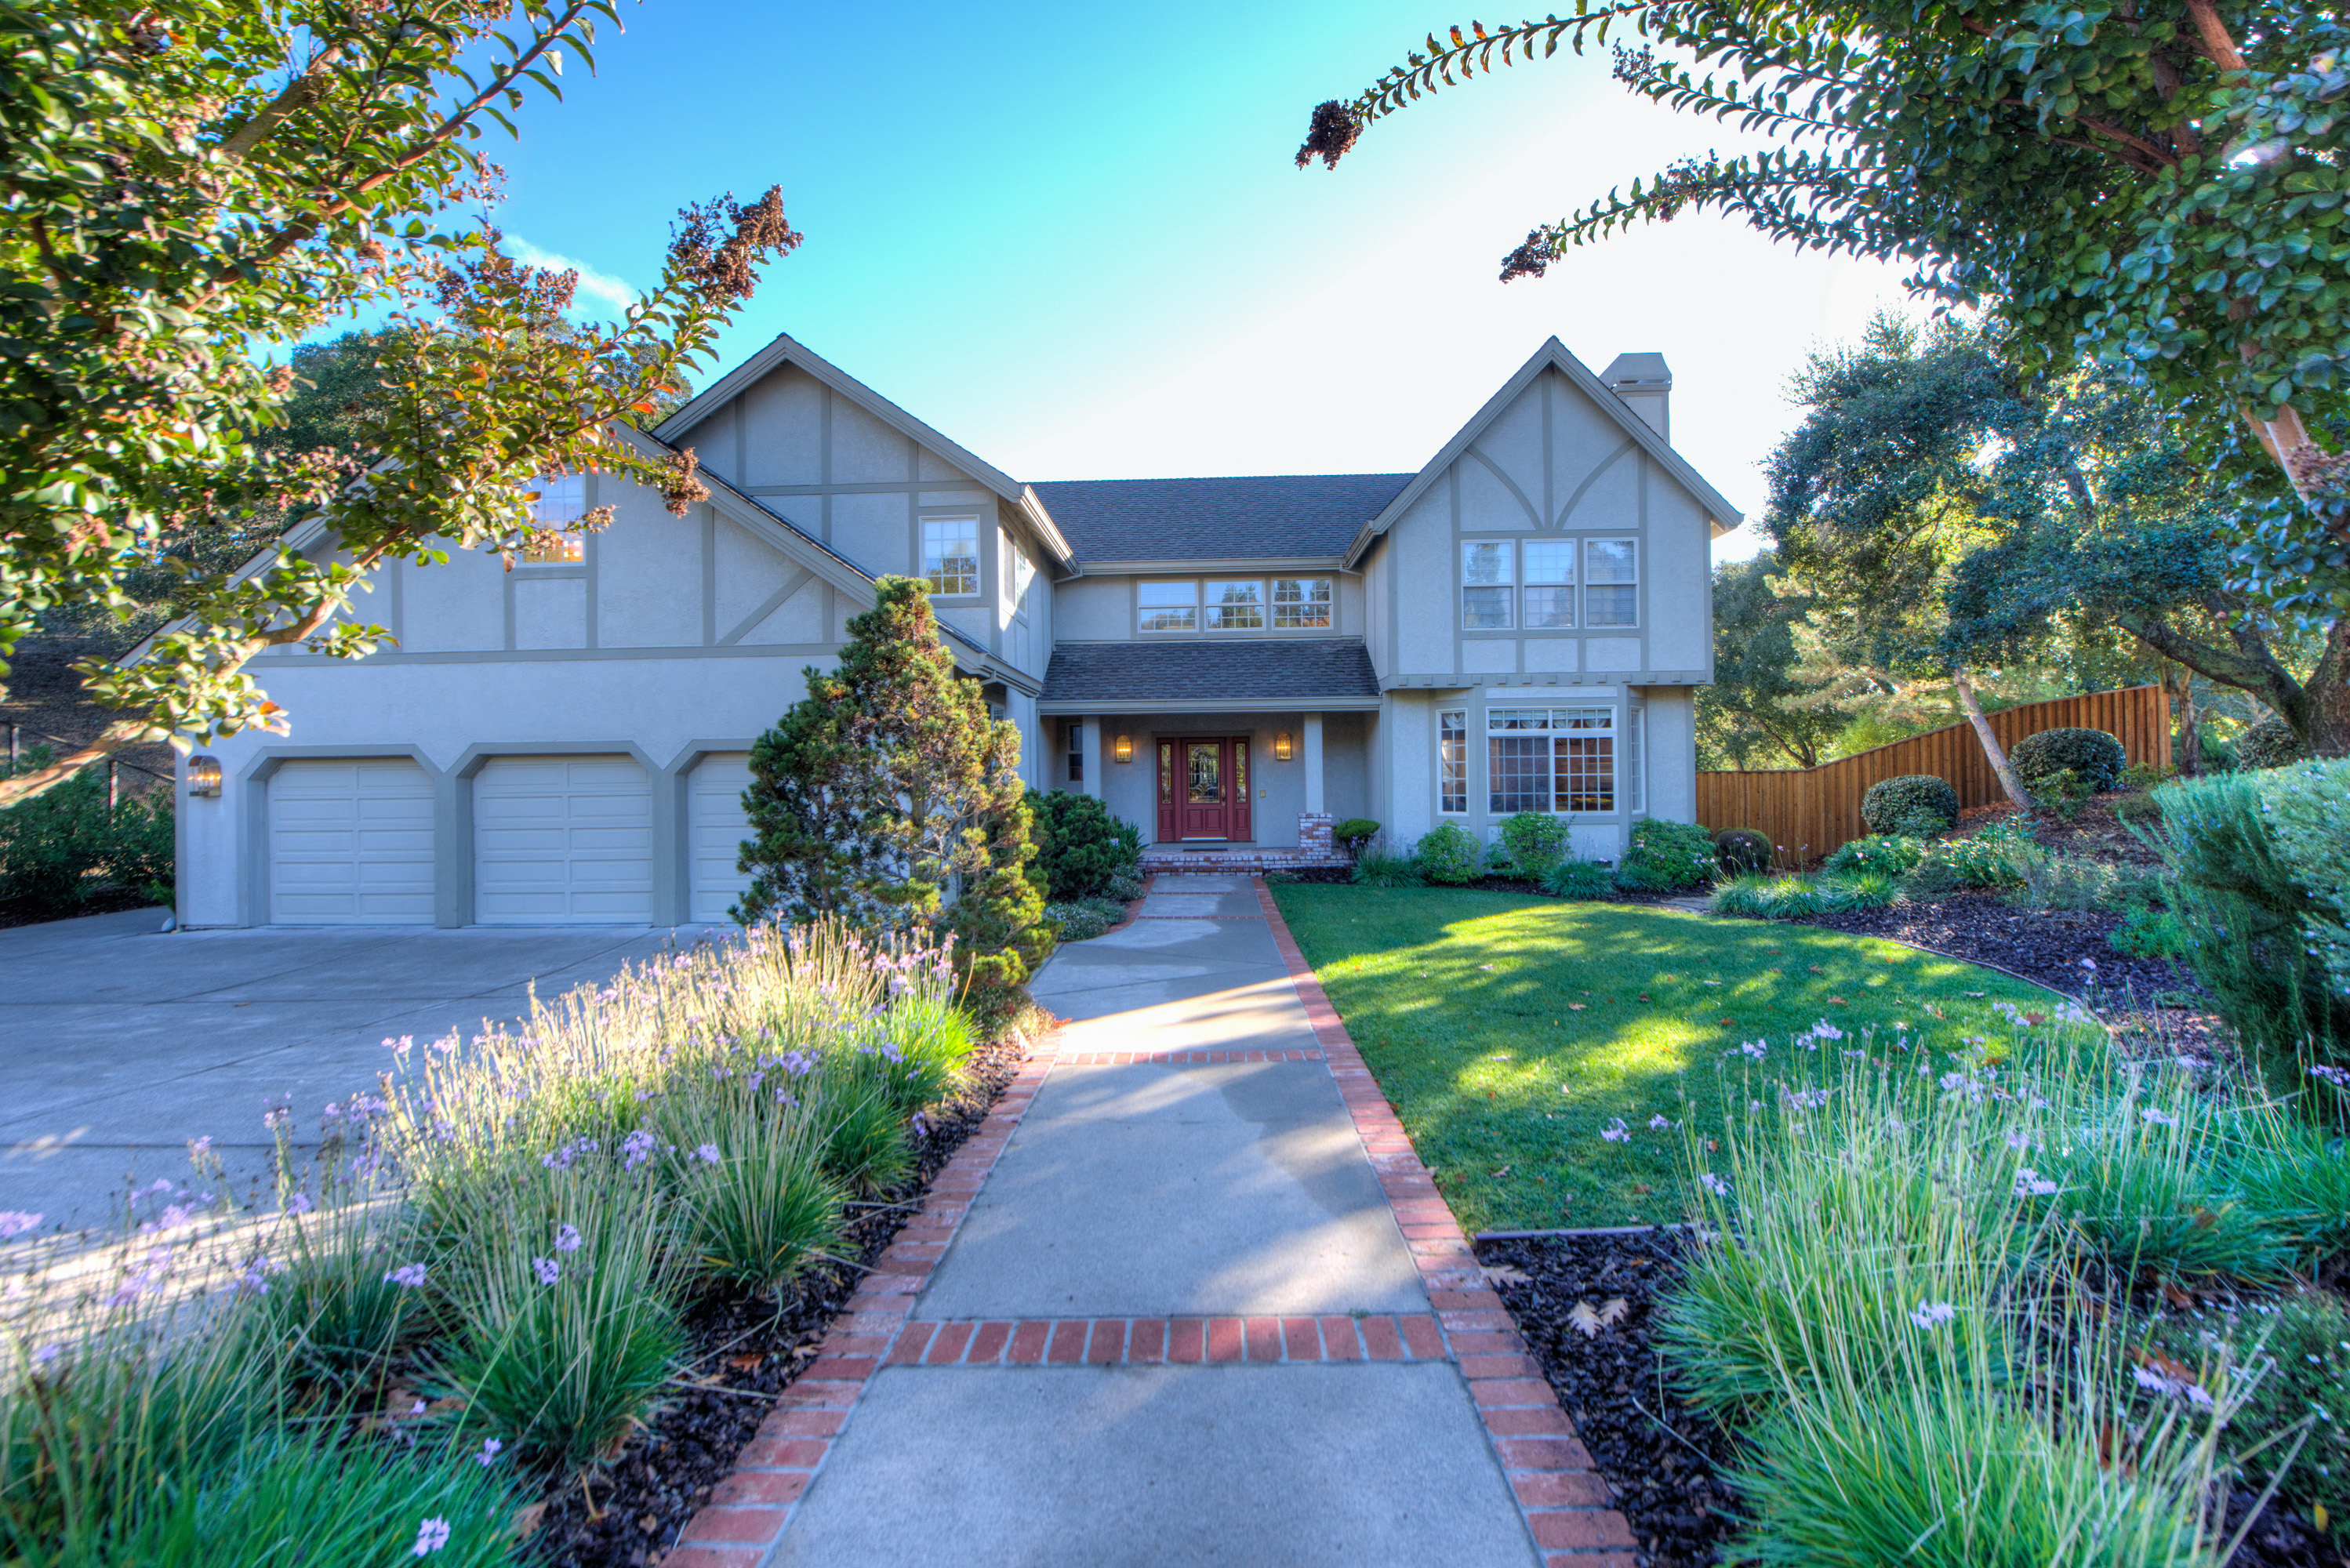 Single Family Home for Sale at Gorgeous Private Home at the Entrance to Indian Valley 2 Douglas Court Novato, California, 94947 United States